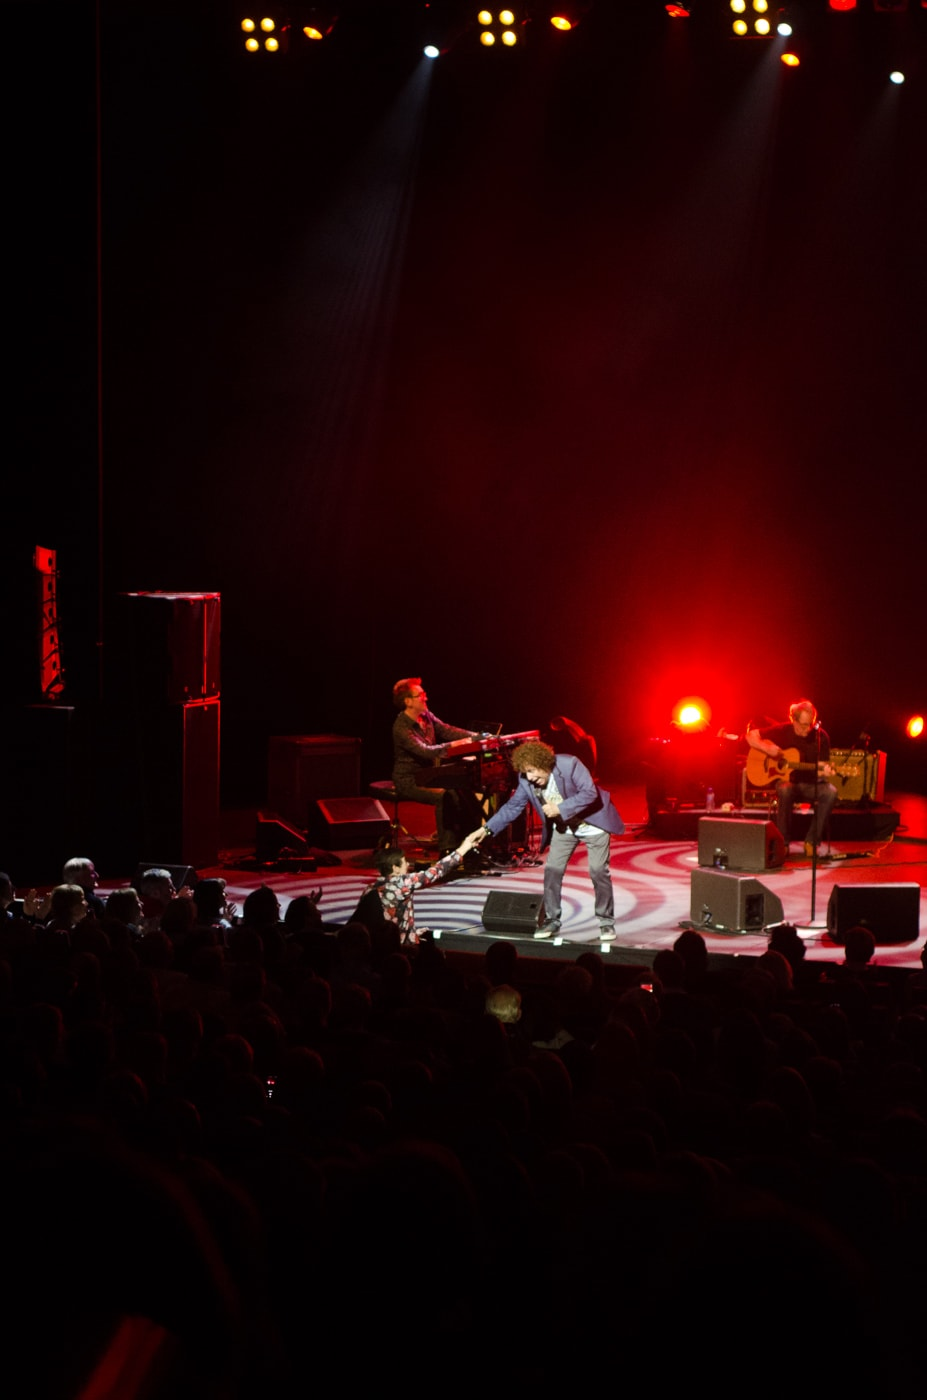 Leo Sayer at Bord Gais Energy Theatre by Sean Smyth (16-10-15) (43 of 129)